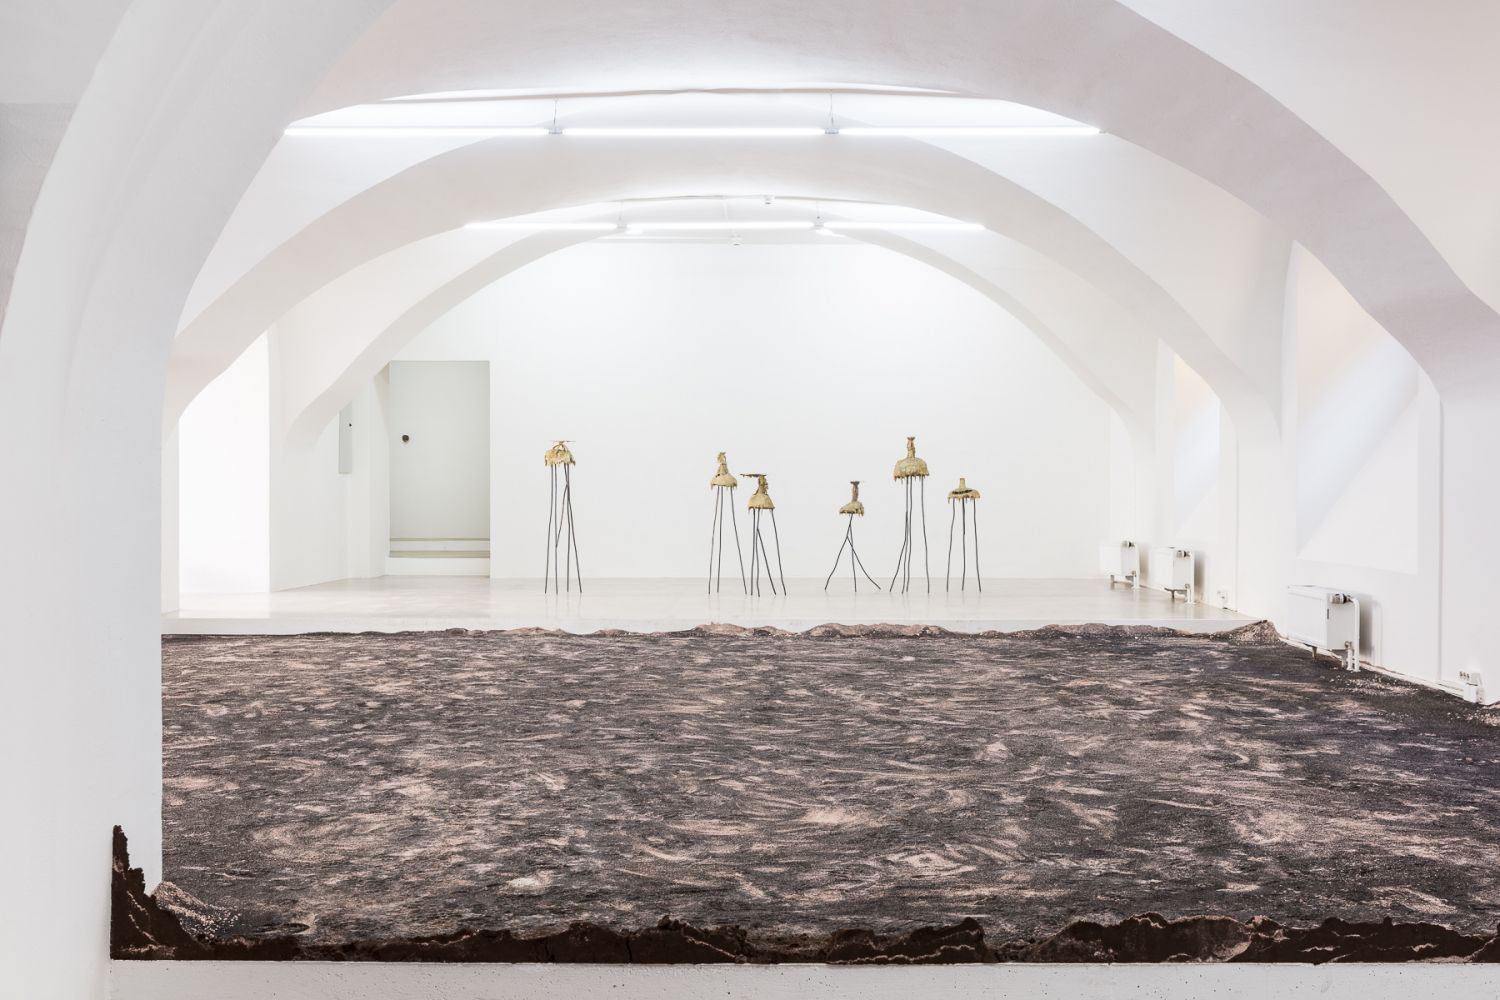 Exhibition View, Grazer Kunstverein, 2019